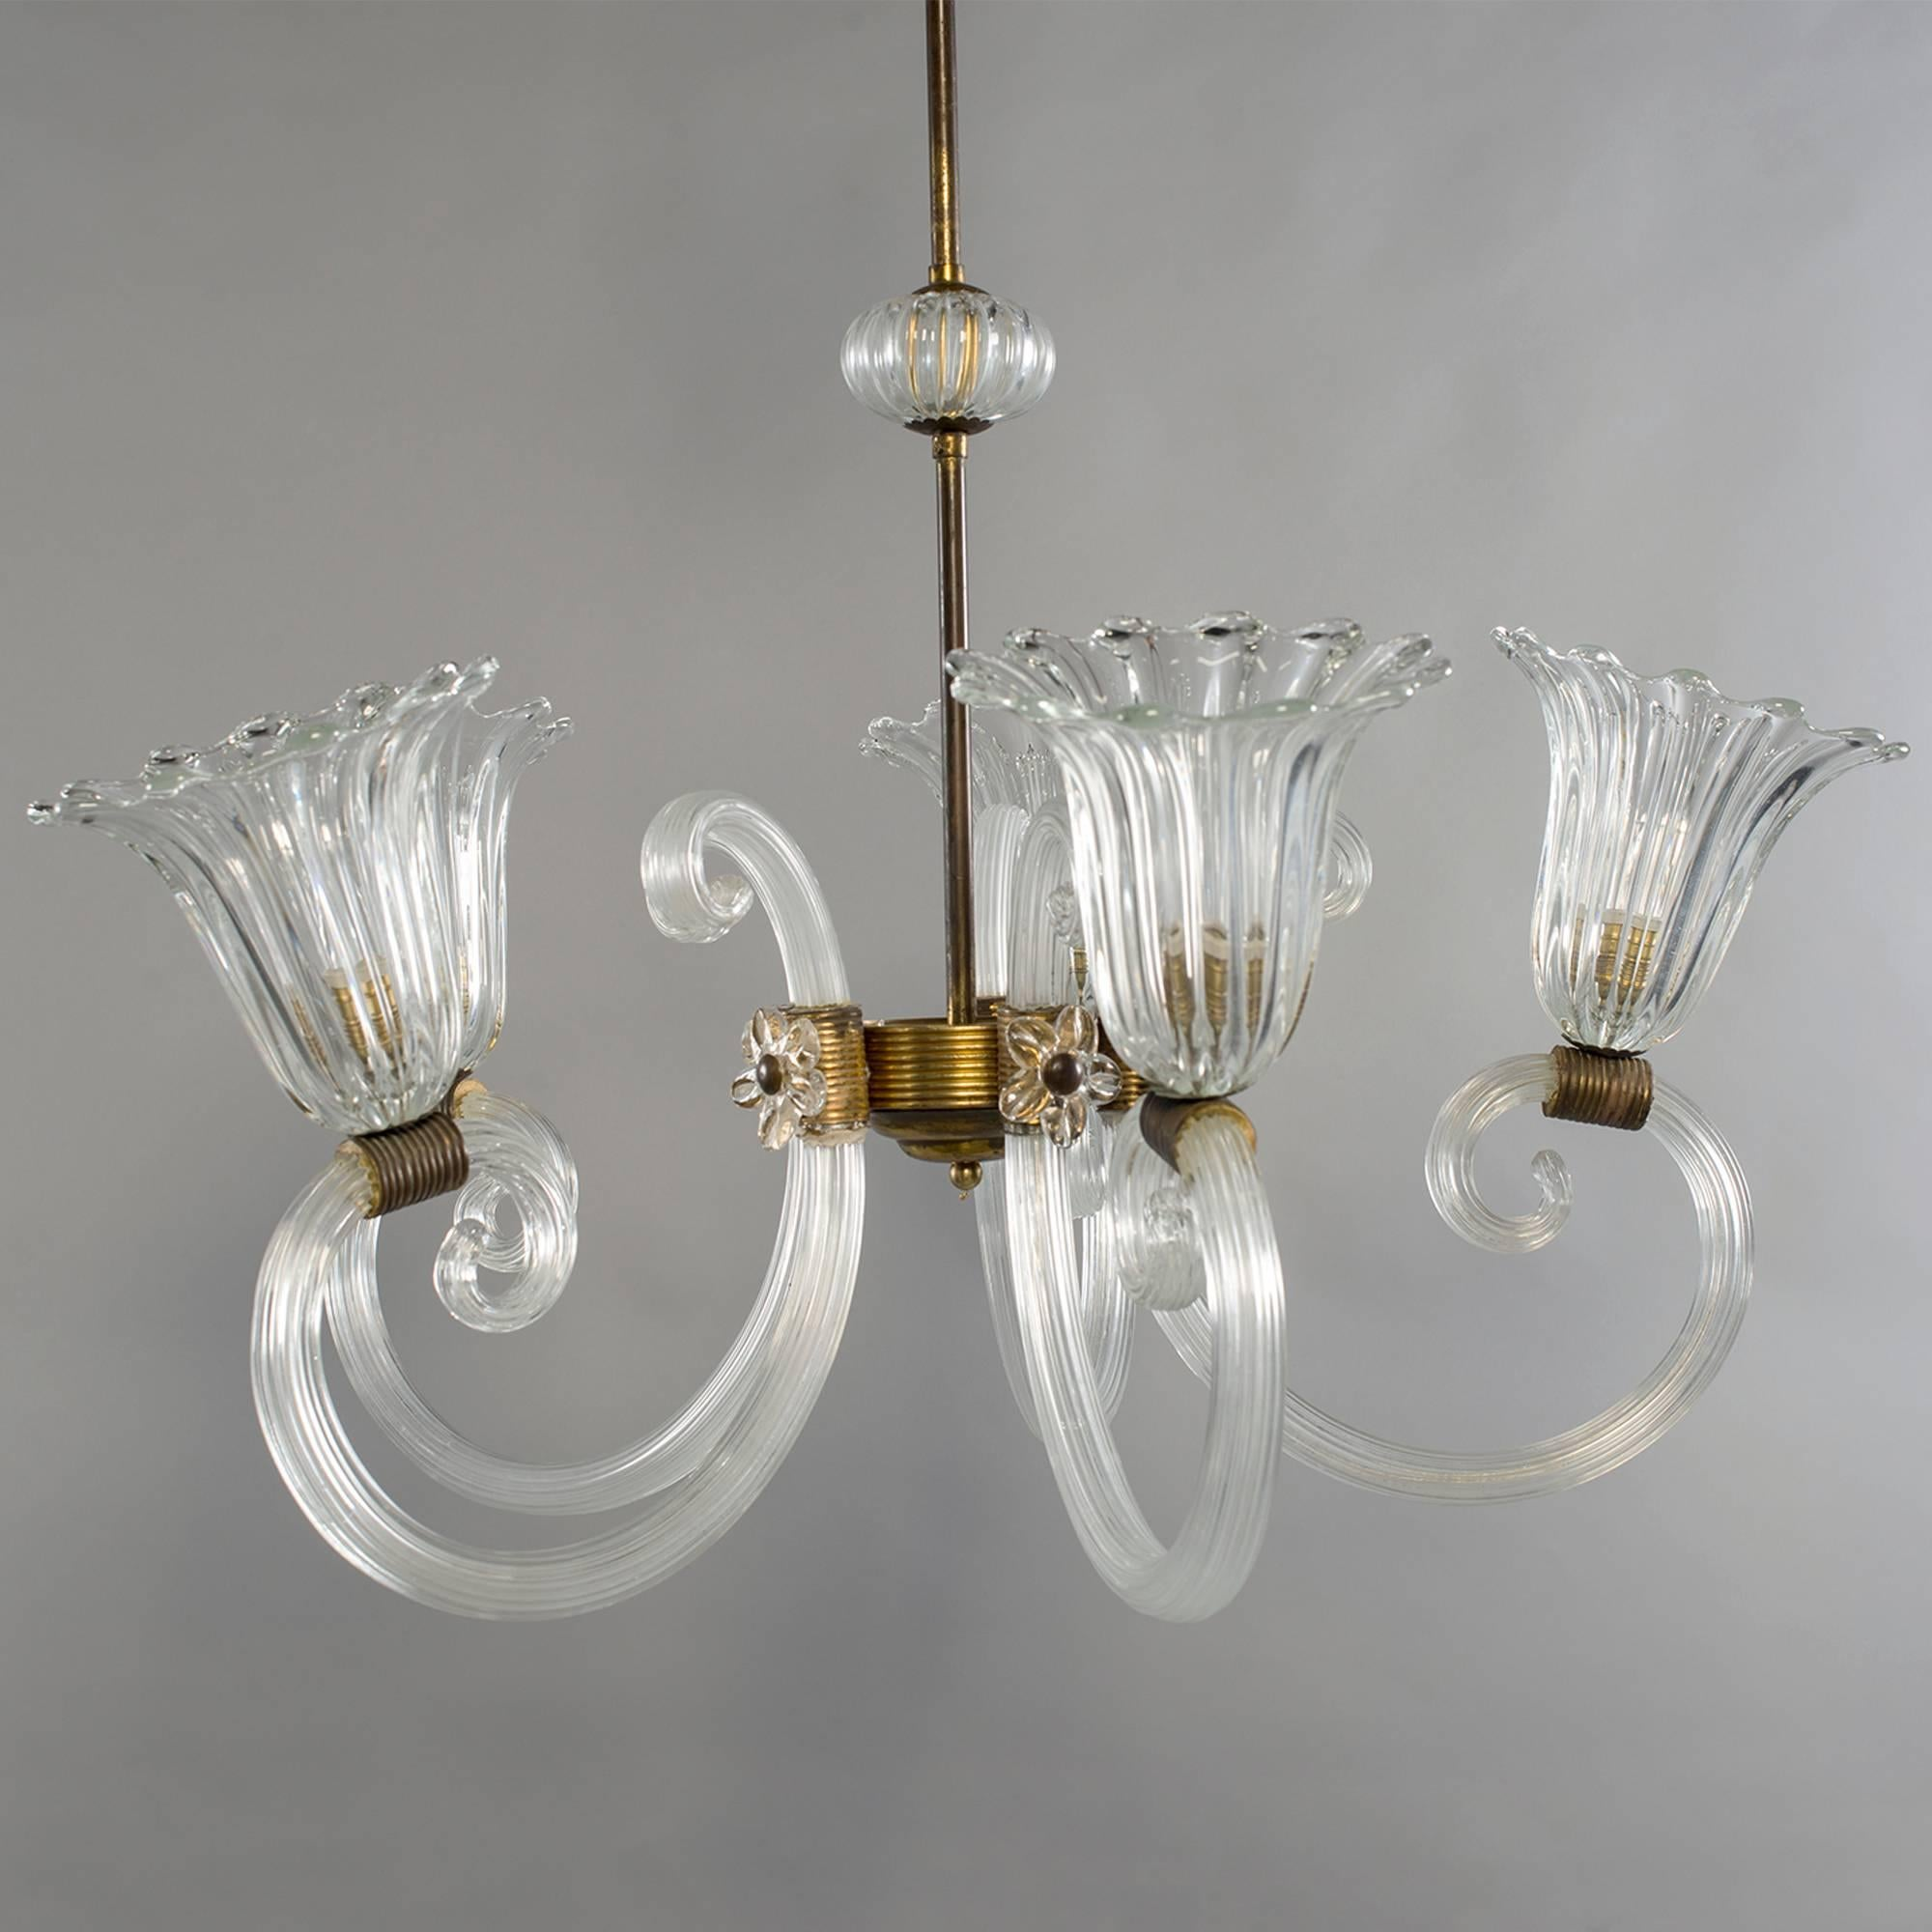 pendant acrylic pendants home lighting jewelry island ceiling glass lights full warisan fitting colored shade art clear facts photo depot world kitchen capri drop for chandelier jug of ice seeded globe size about amazon hand kenroy blown light large bubble